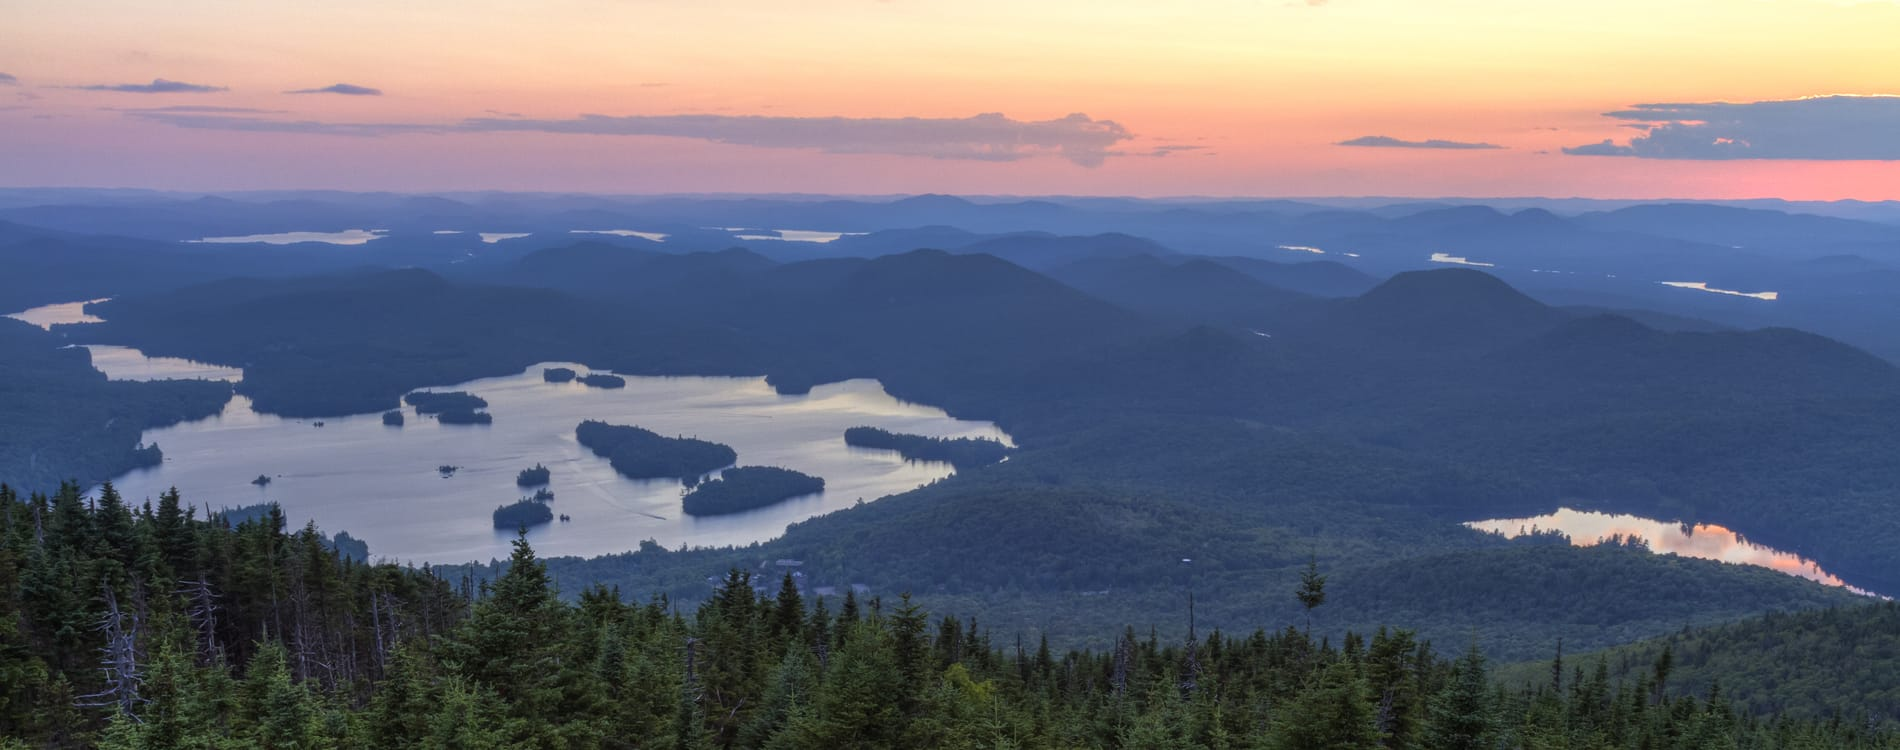 Adirondacks - View from Blue Mountain Fire Tower